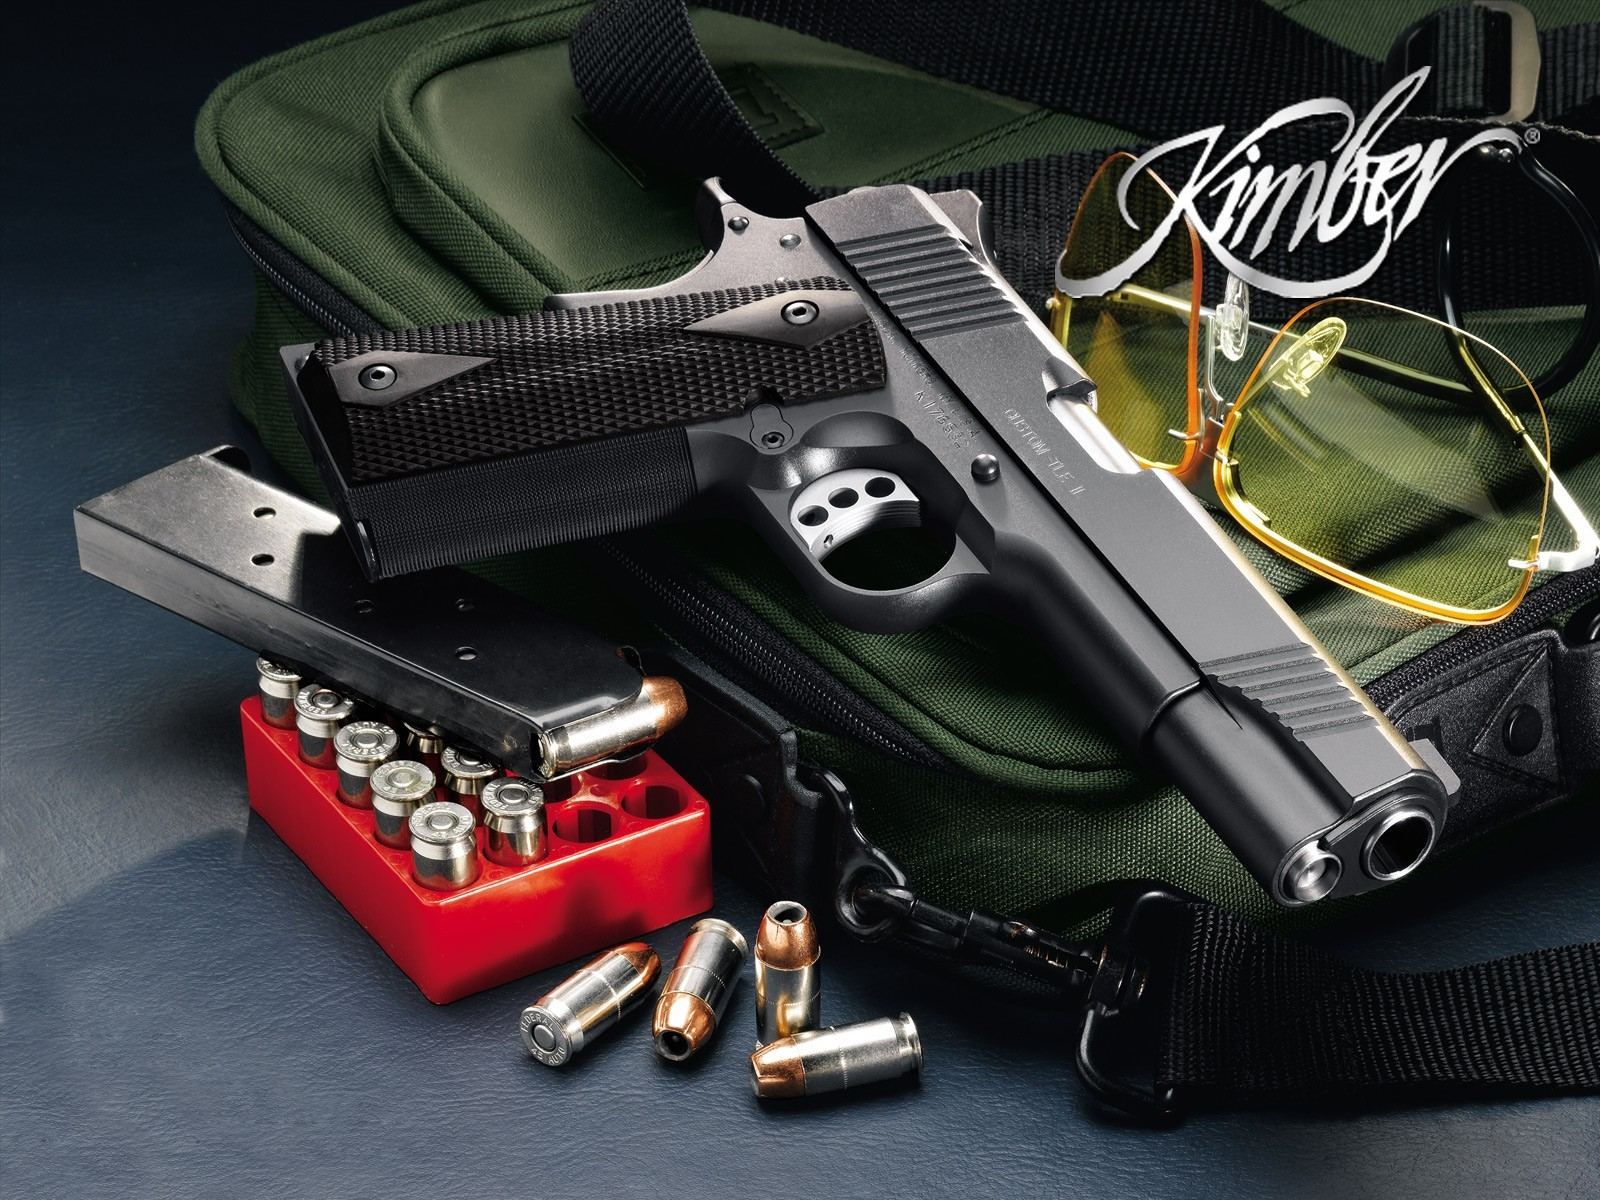 pistols Guns weapons ammunition HD Wallpaper